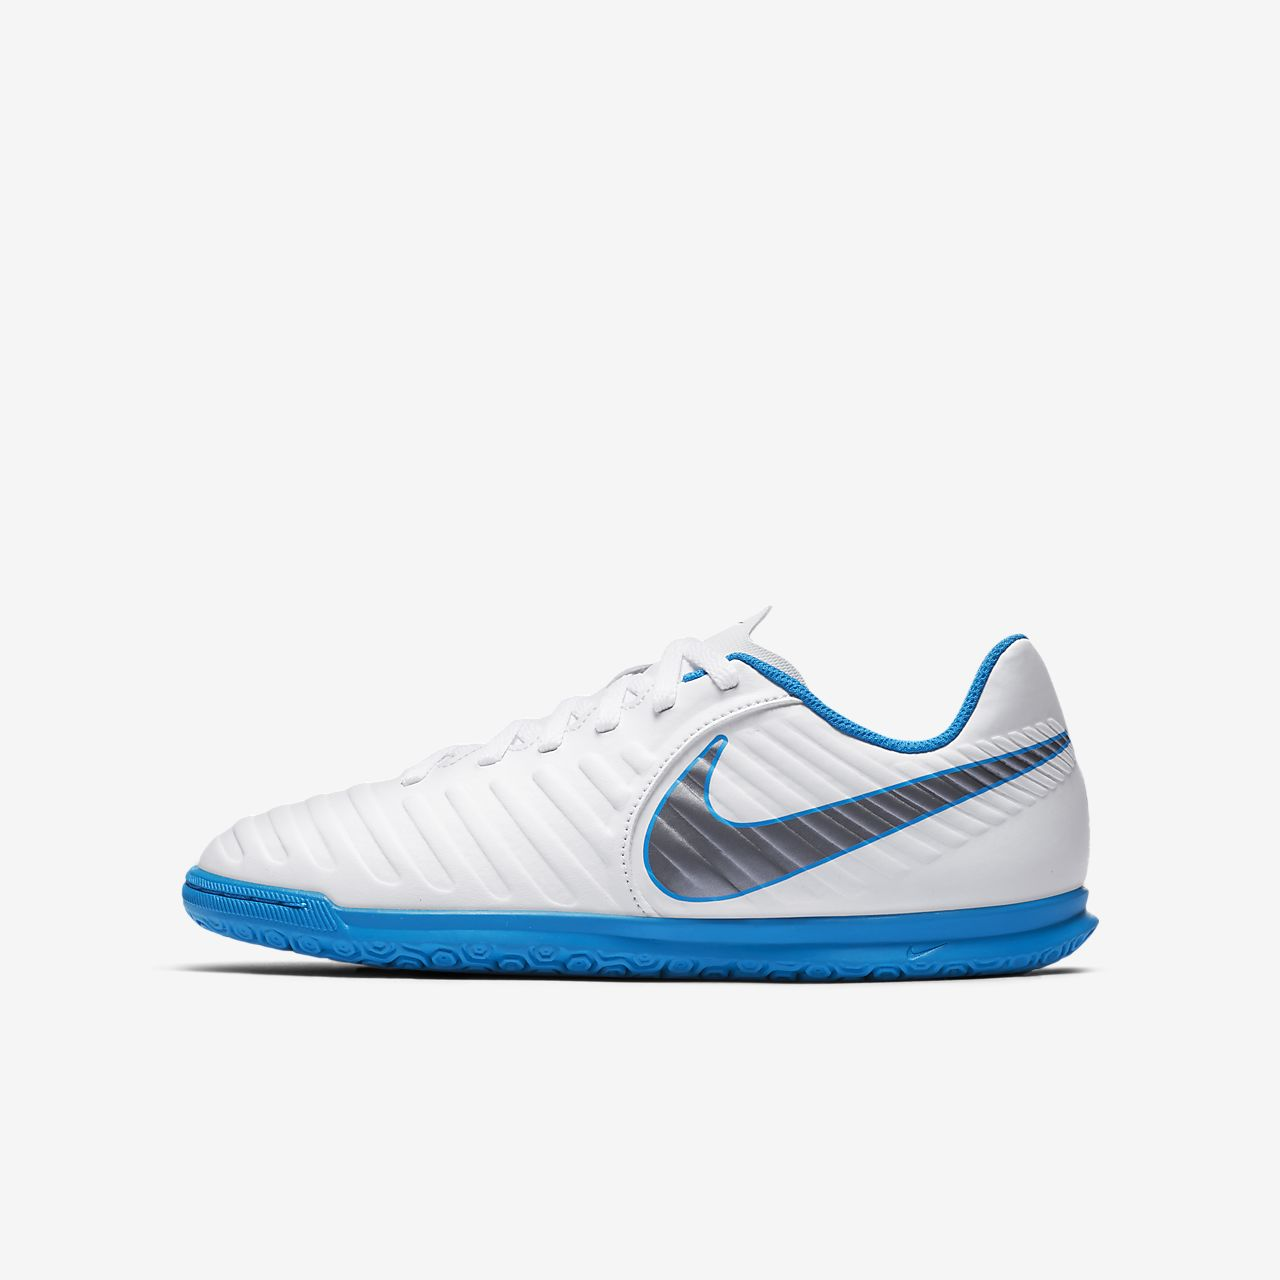 ... Nike Jr. Tiempo Legend Club VII IC Younger/Older Kids' Turf Football  Boot